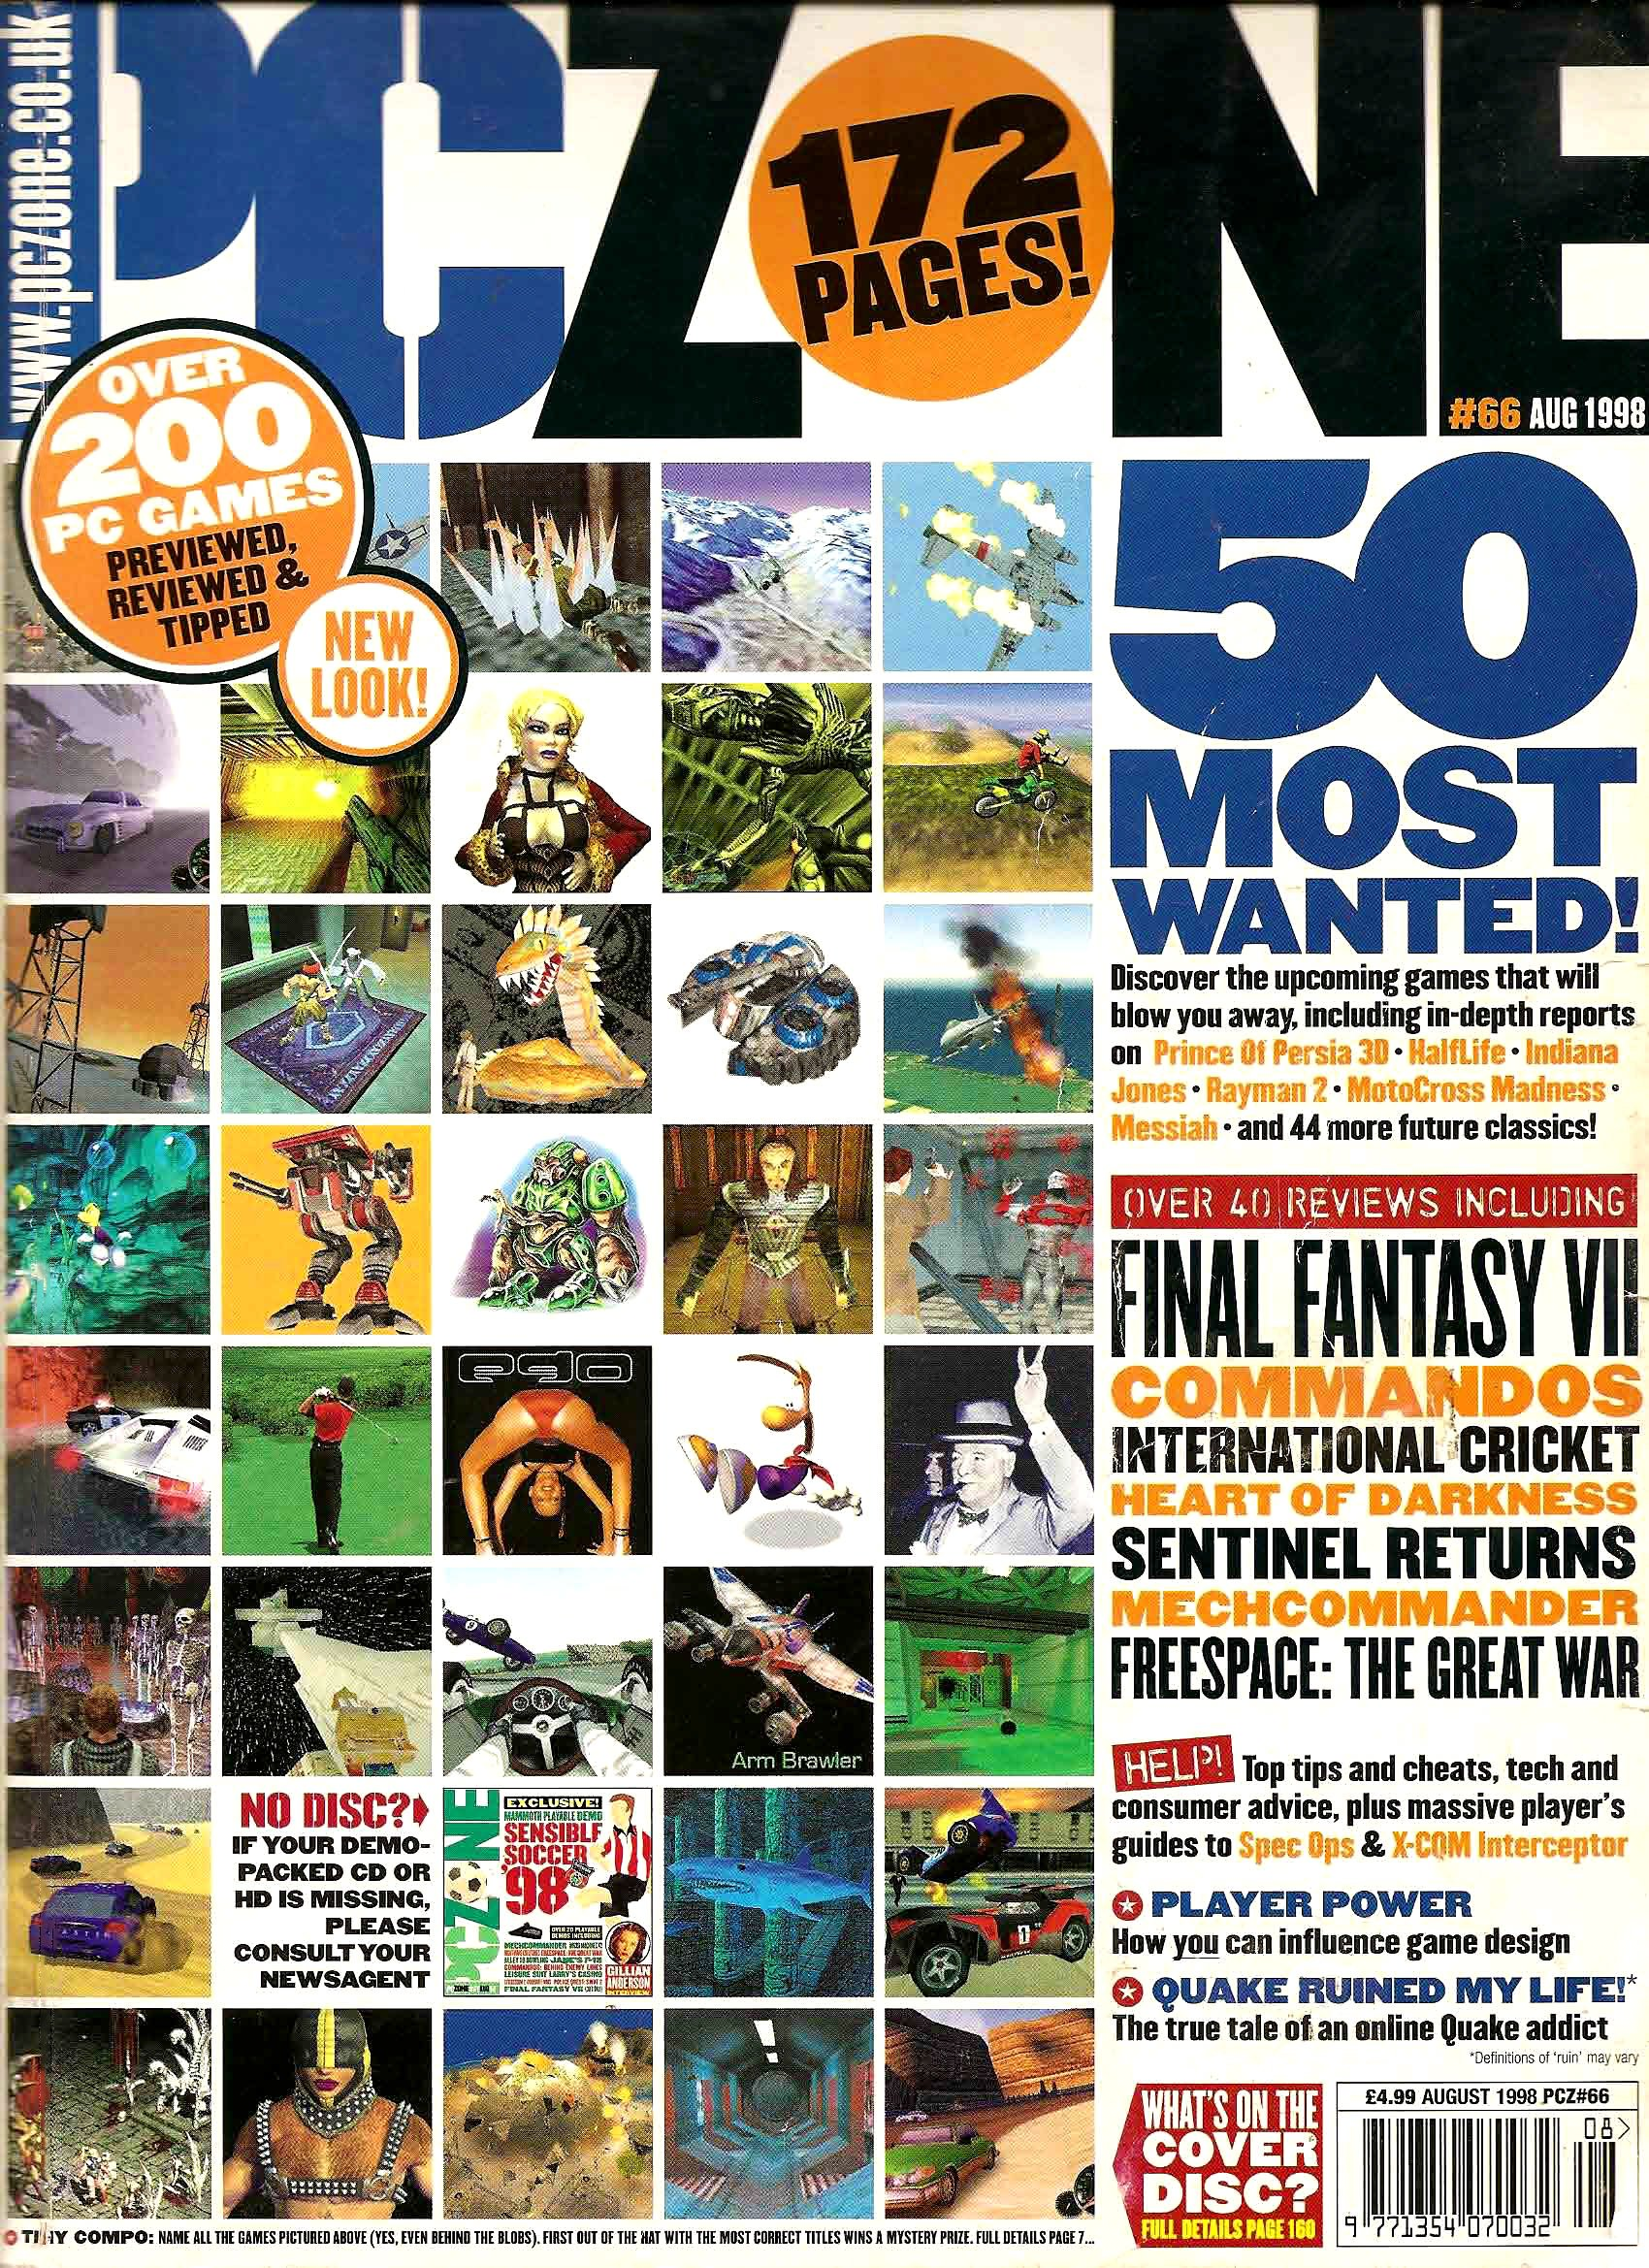 PC Zone Issue 066 (August 1998)